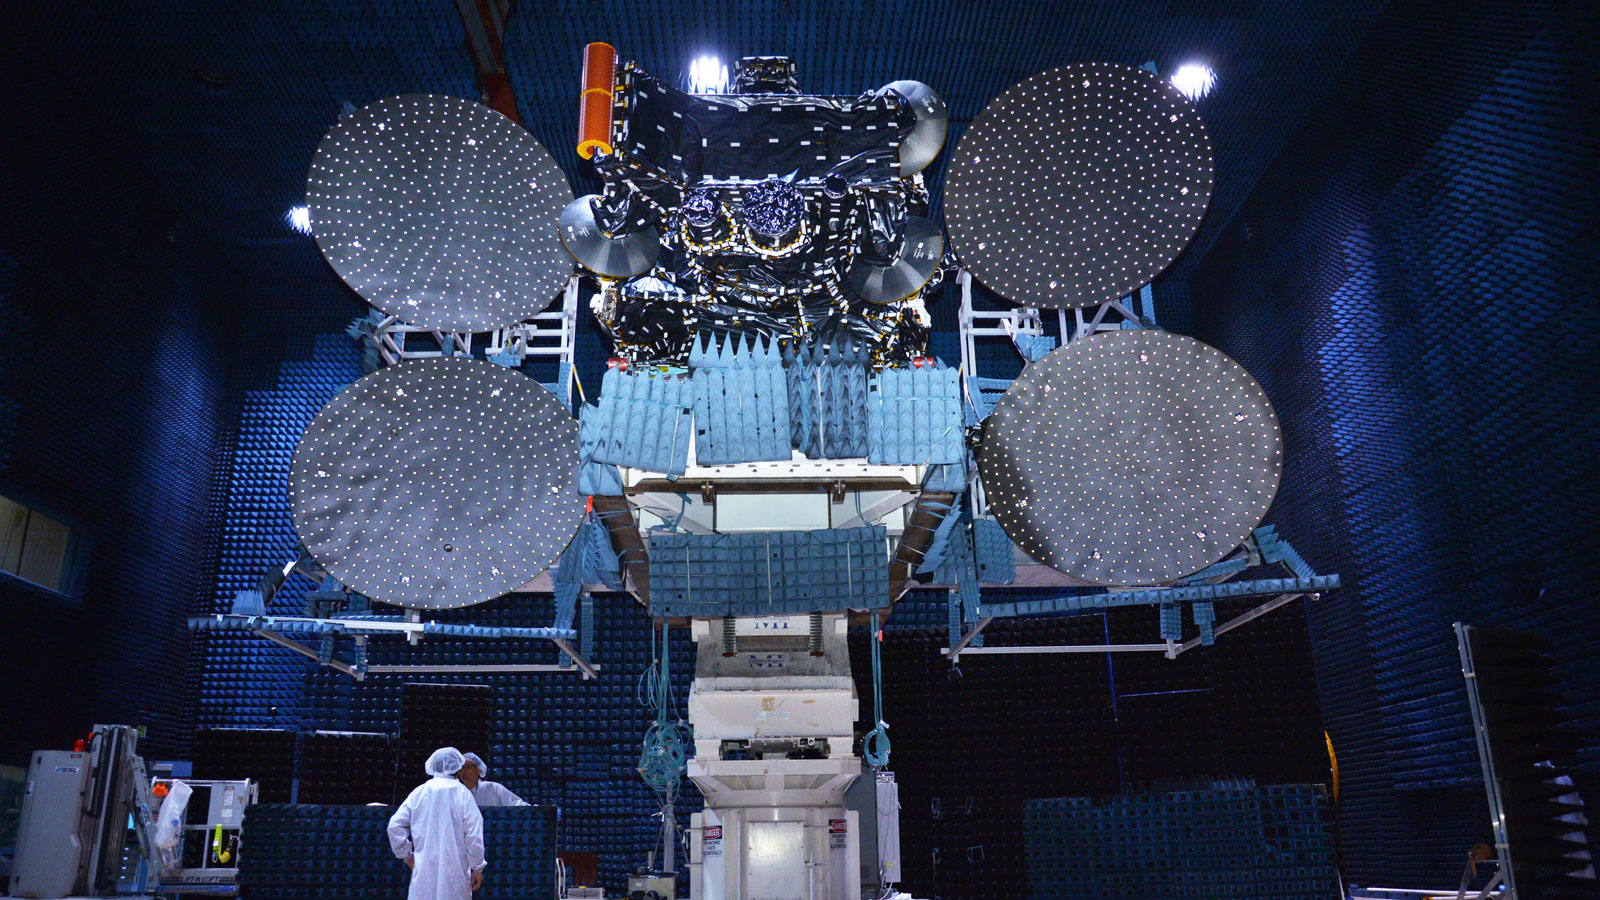 Star One C4 satellite, which includes IberEspacio Loop Heat Pipes, being tested in Space Systems Loral facilities